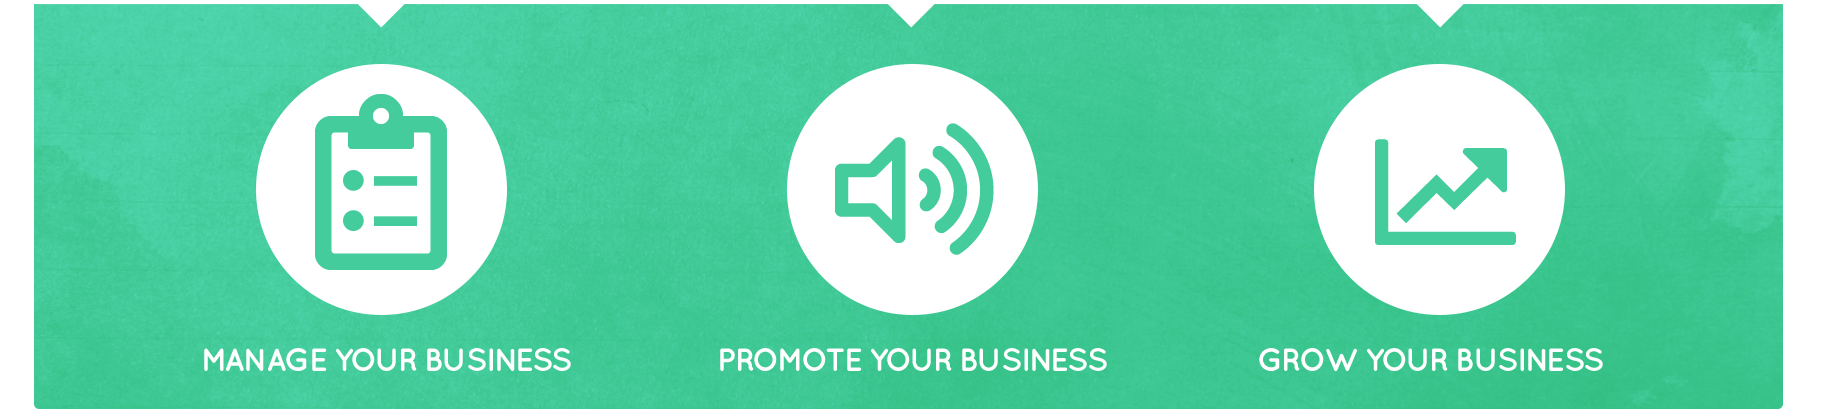 MANAGE YOUR BUSINESS, PROMOTE YOUR BUSINESS AND GROW YOUR BUSINESS